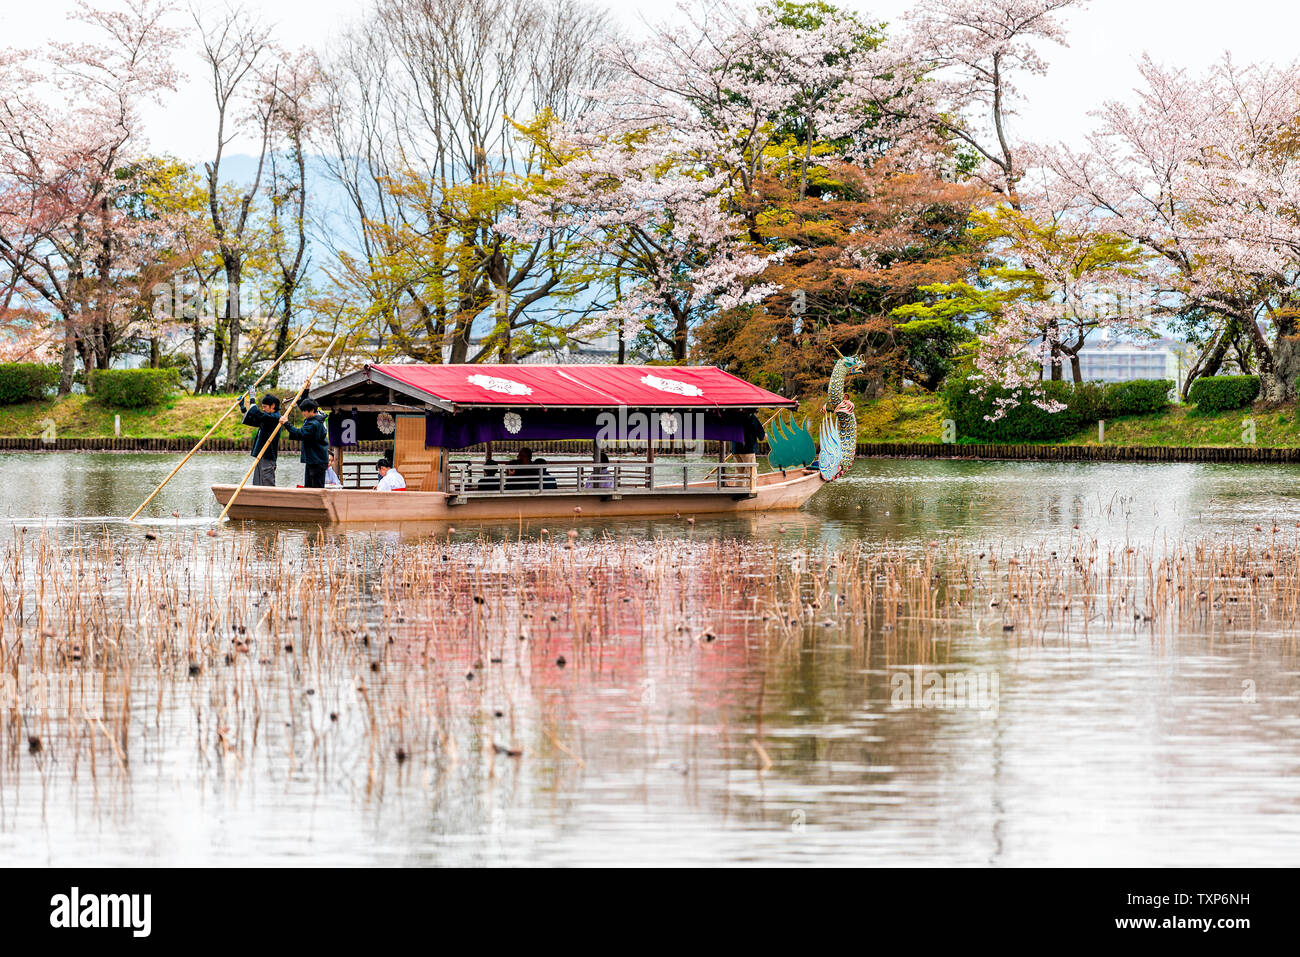 Kyoto, Japan - April 11, 2019: Cherry blossom and lotus pond by Osawa-no-Ike Pond lake in spring in Arashiyama area by Daikakuji Temple with red drago Stock Photo